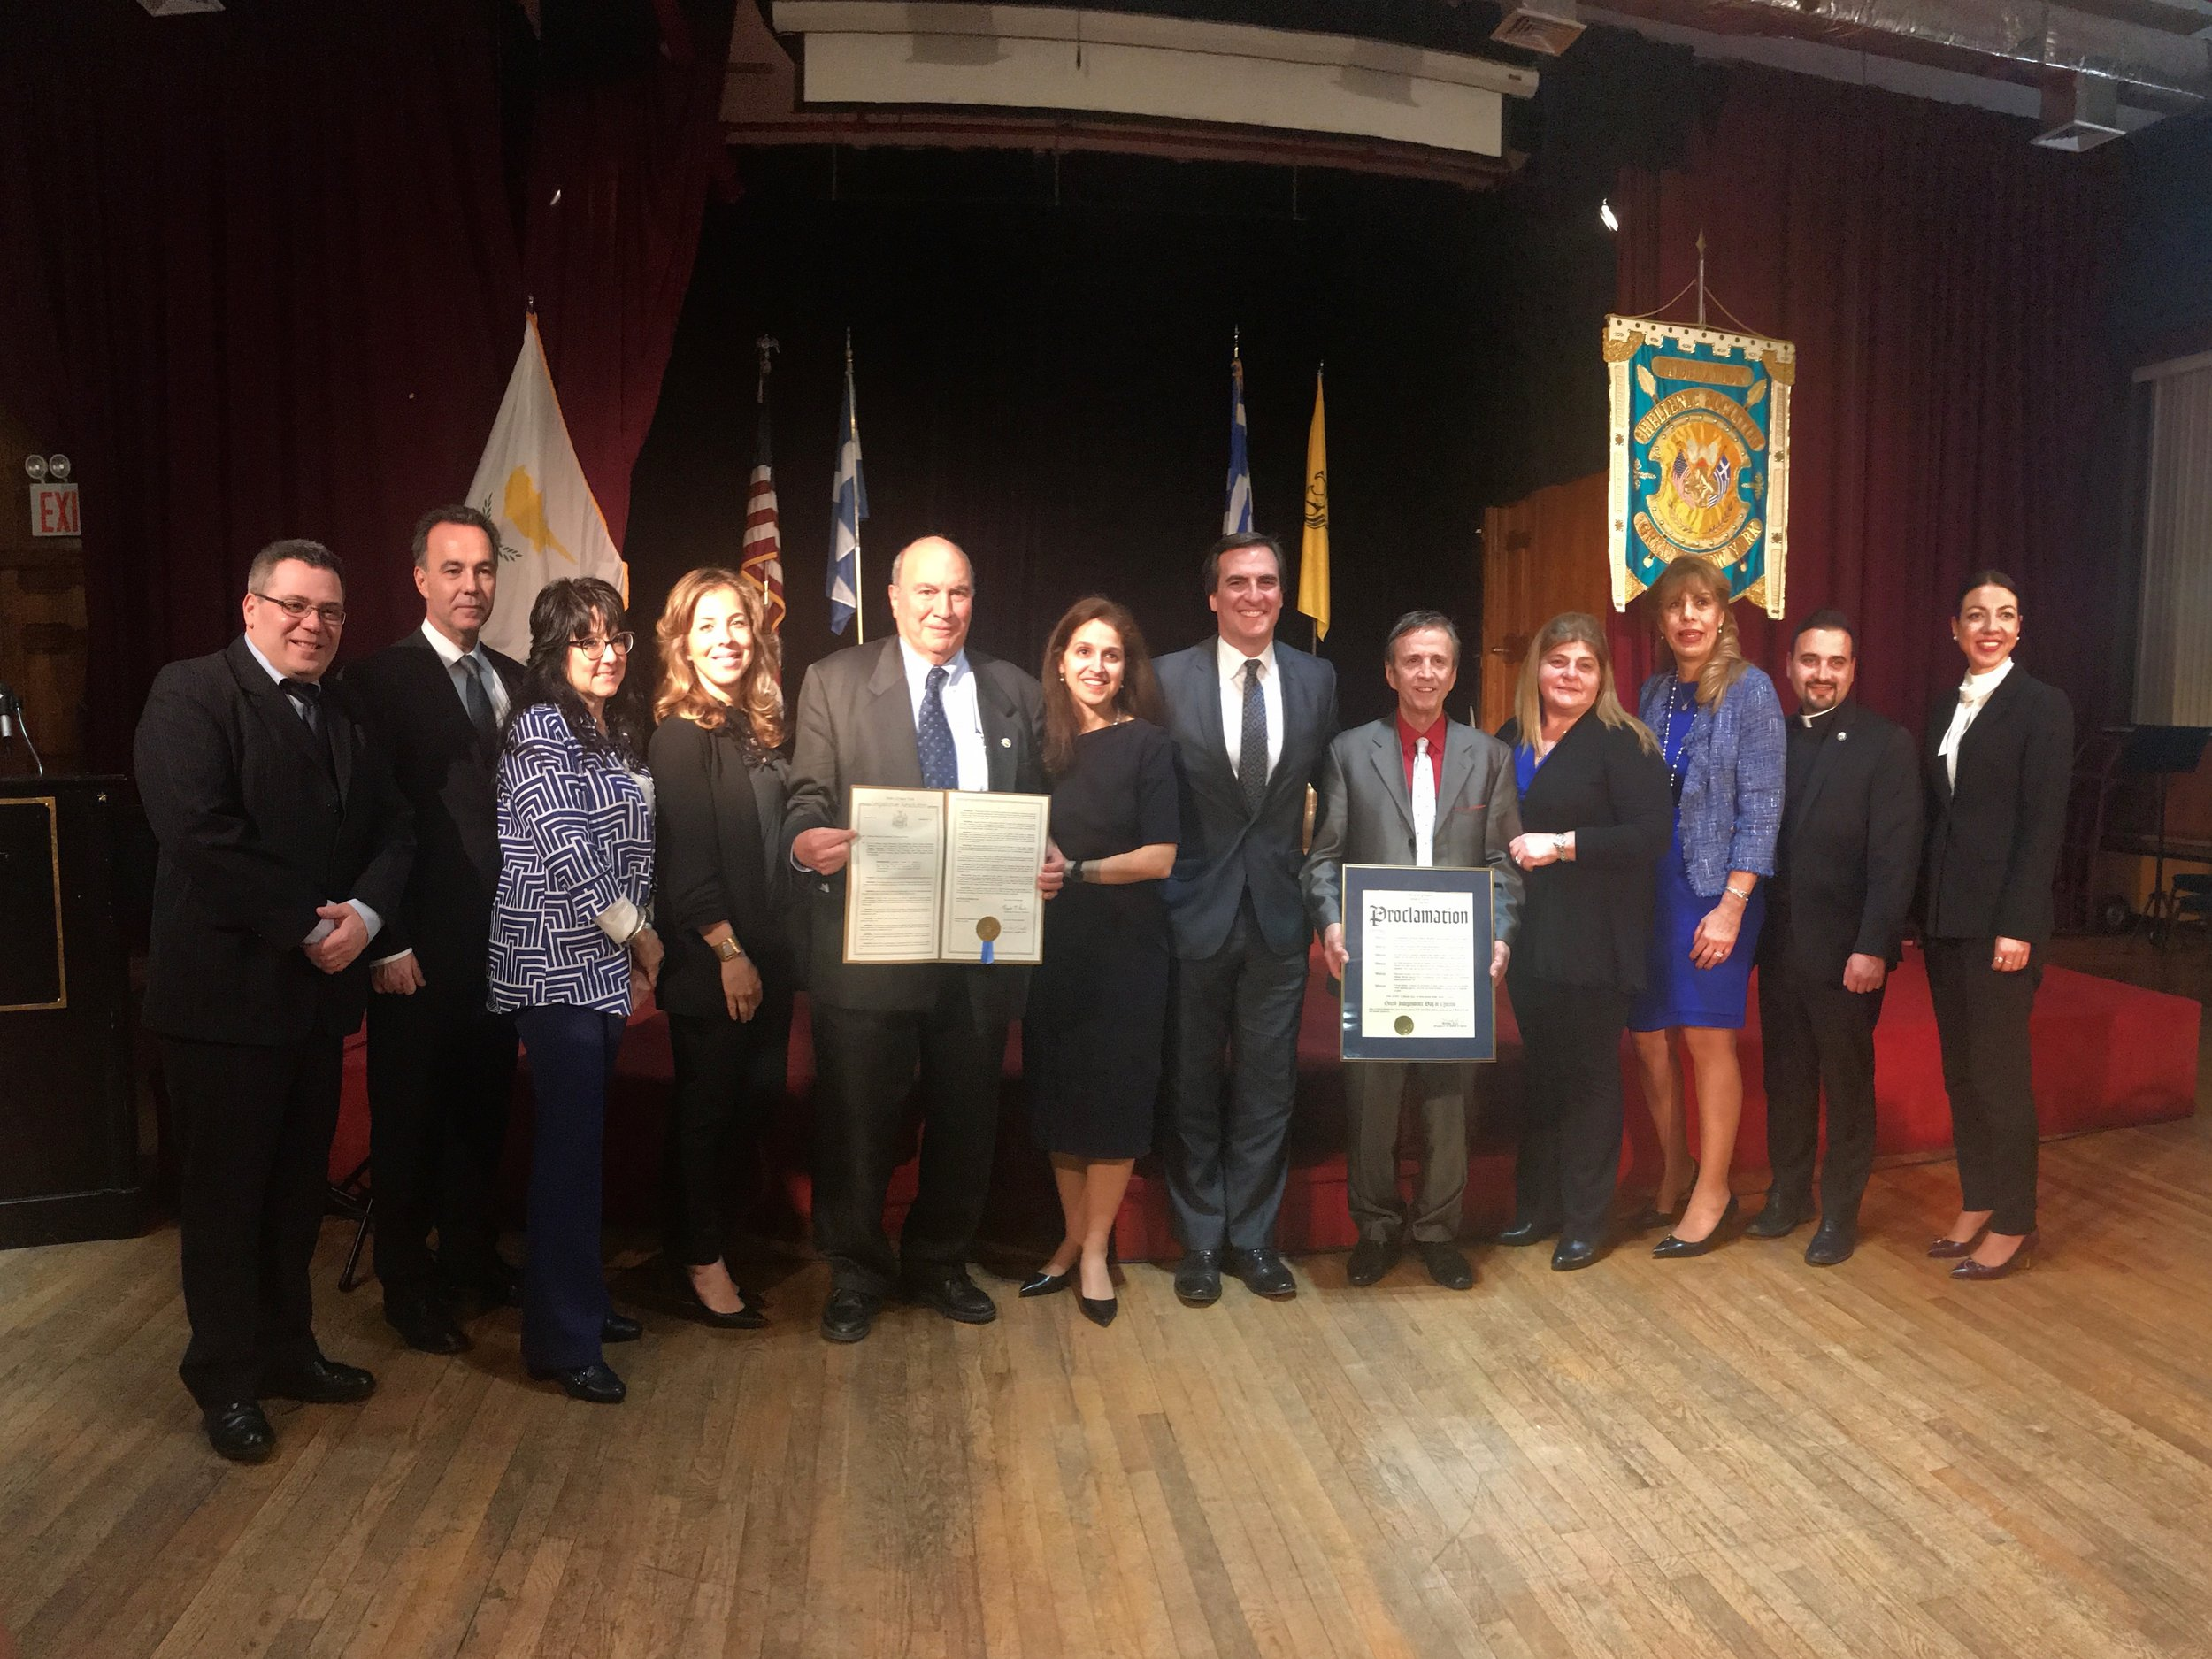 State Sen. Michael Gianaris, Assemblymember Aravella Simotas and Councilmember Costa Constantinides celebrated Greek Independence Day by honoring Astoria community leaders Maria Haralampopoulos, an educator at the Academy of American Studies; Father George Anastasiou, NYPD chaplin; Betsy Sideris, principal of St. Catherine's School; Effie Lekas, Queens College professor; and Florence Koulouris, district manager of Community Board 1. Photos courtesy of Gianaris' Office.